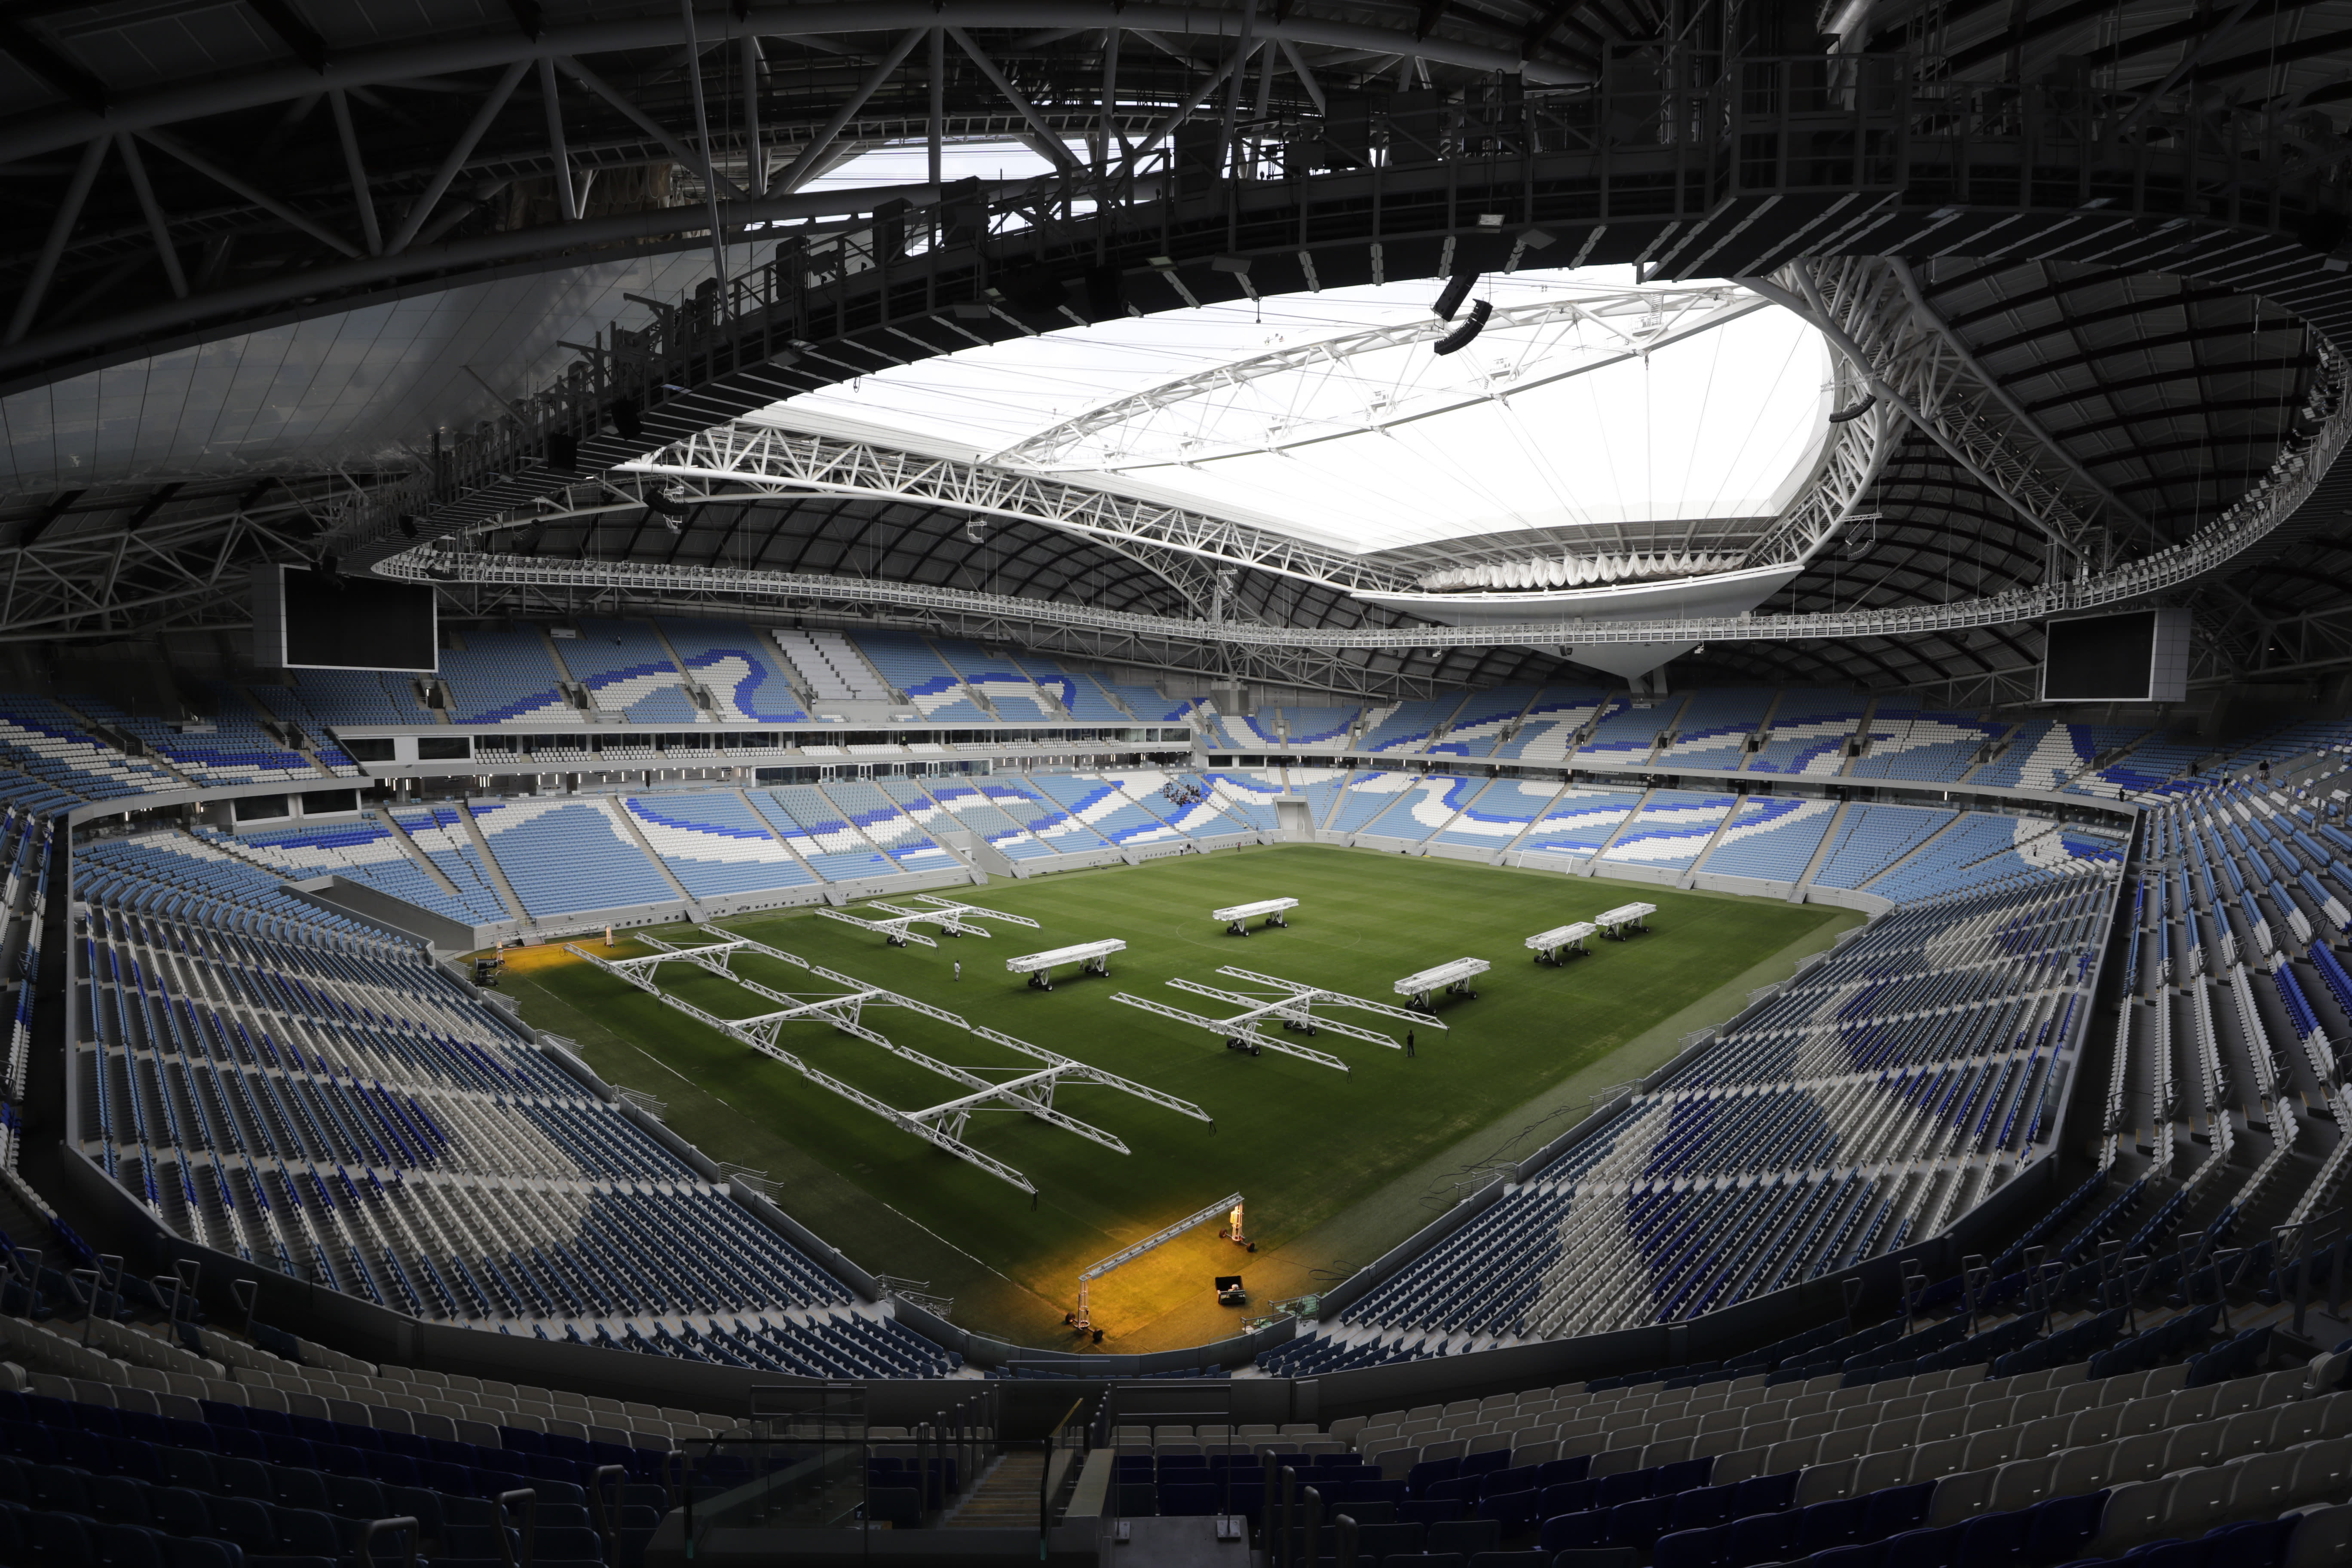 FILE - In this Monday, Dec. 16, 2019 file photo, a view shows the Al Janoub Stadium, one of the 2022 World Cup stadiums, in Doha, Qatar. The 2022 World Cup will open with four games every day in a 12-day group stage and some matches that go into extra time will extend past midnight in Qatar. FIFA on Wednesday July 15, 2020 released the match schedule for the first World Cup to be played across November-December. (AP Photo/Hassan Ammar, File)